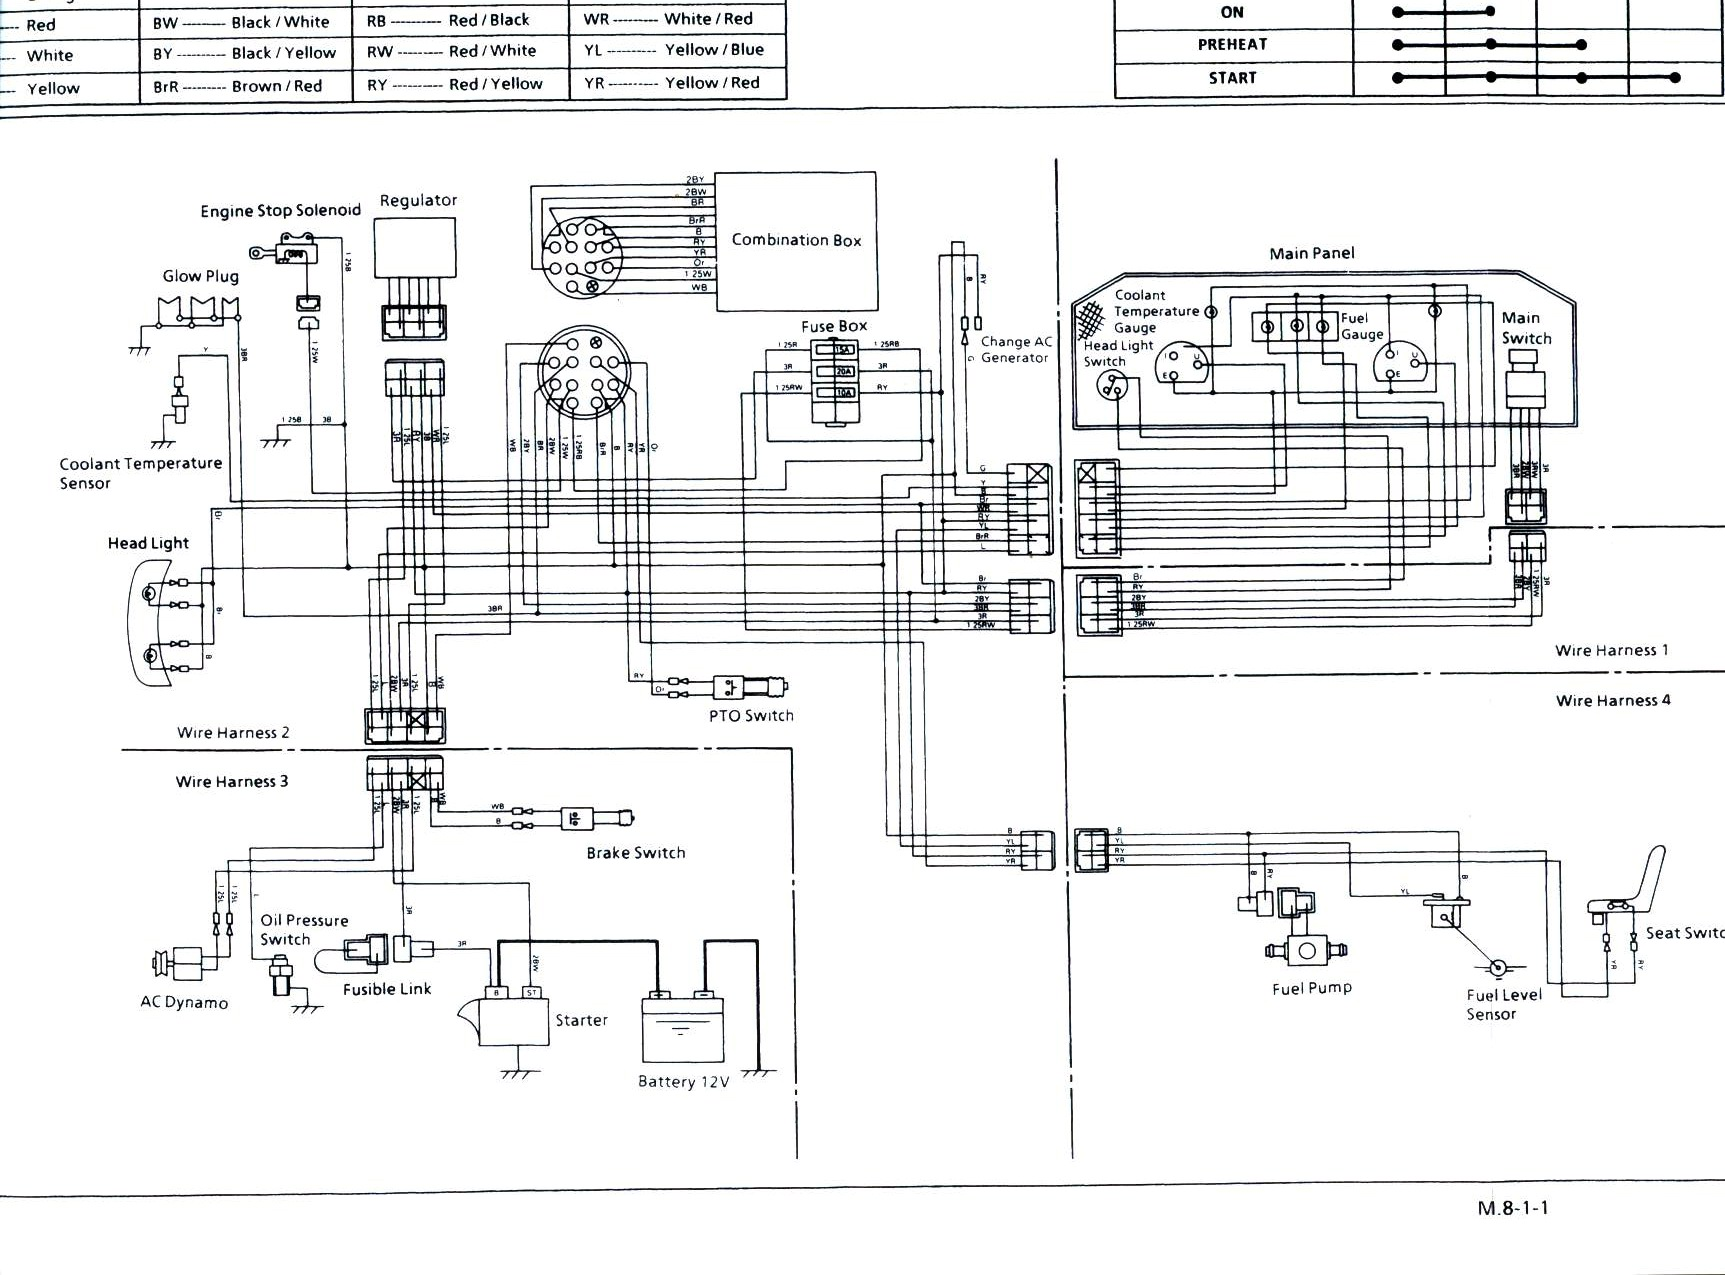 Need a G1900S wiring diagram - MyTractorForum.com - The Friendliest